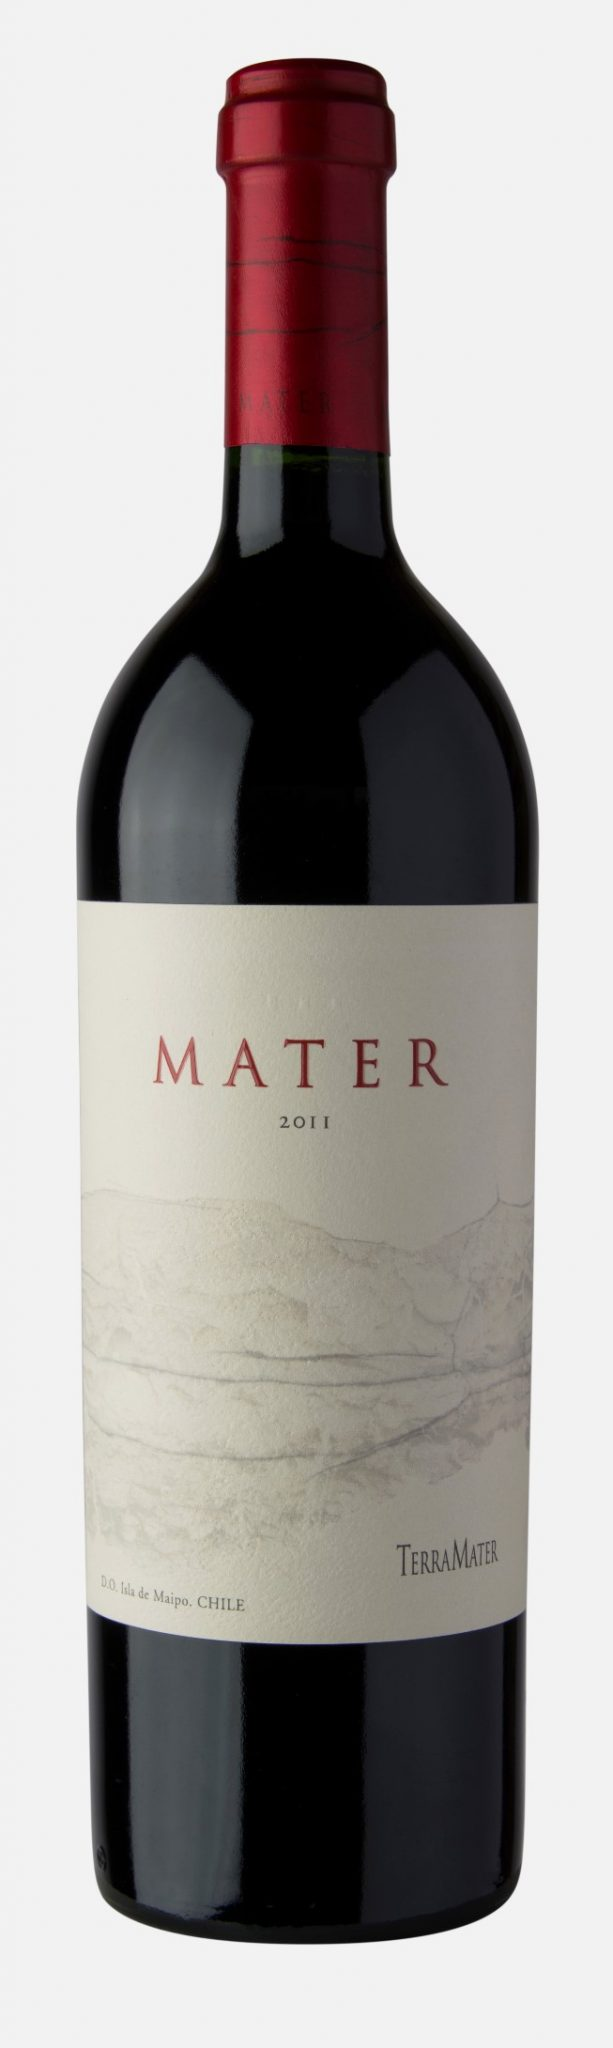 Ikon Vin - Mater 2010 (secret grapes) - Blend